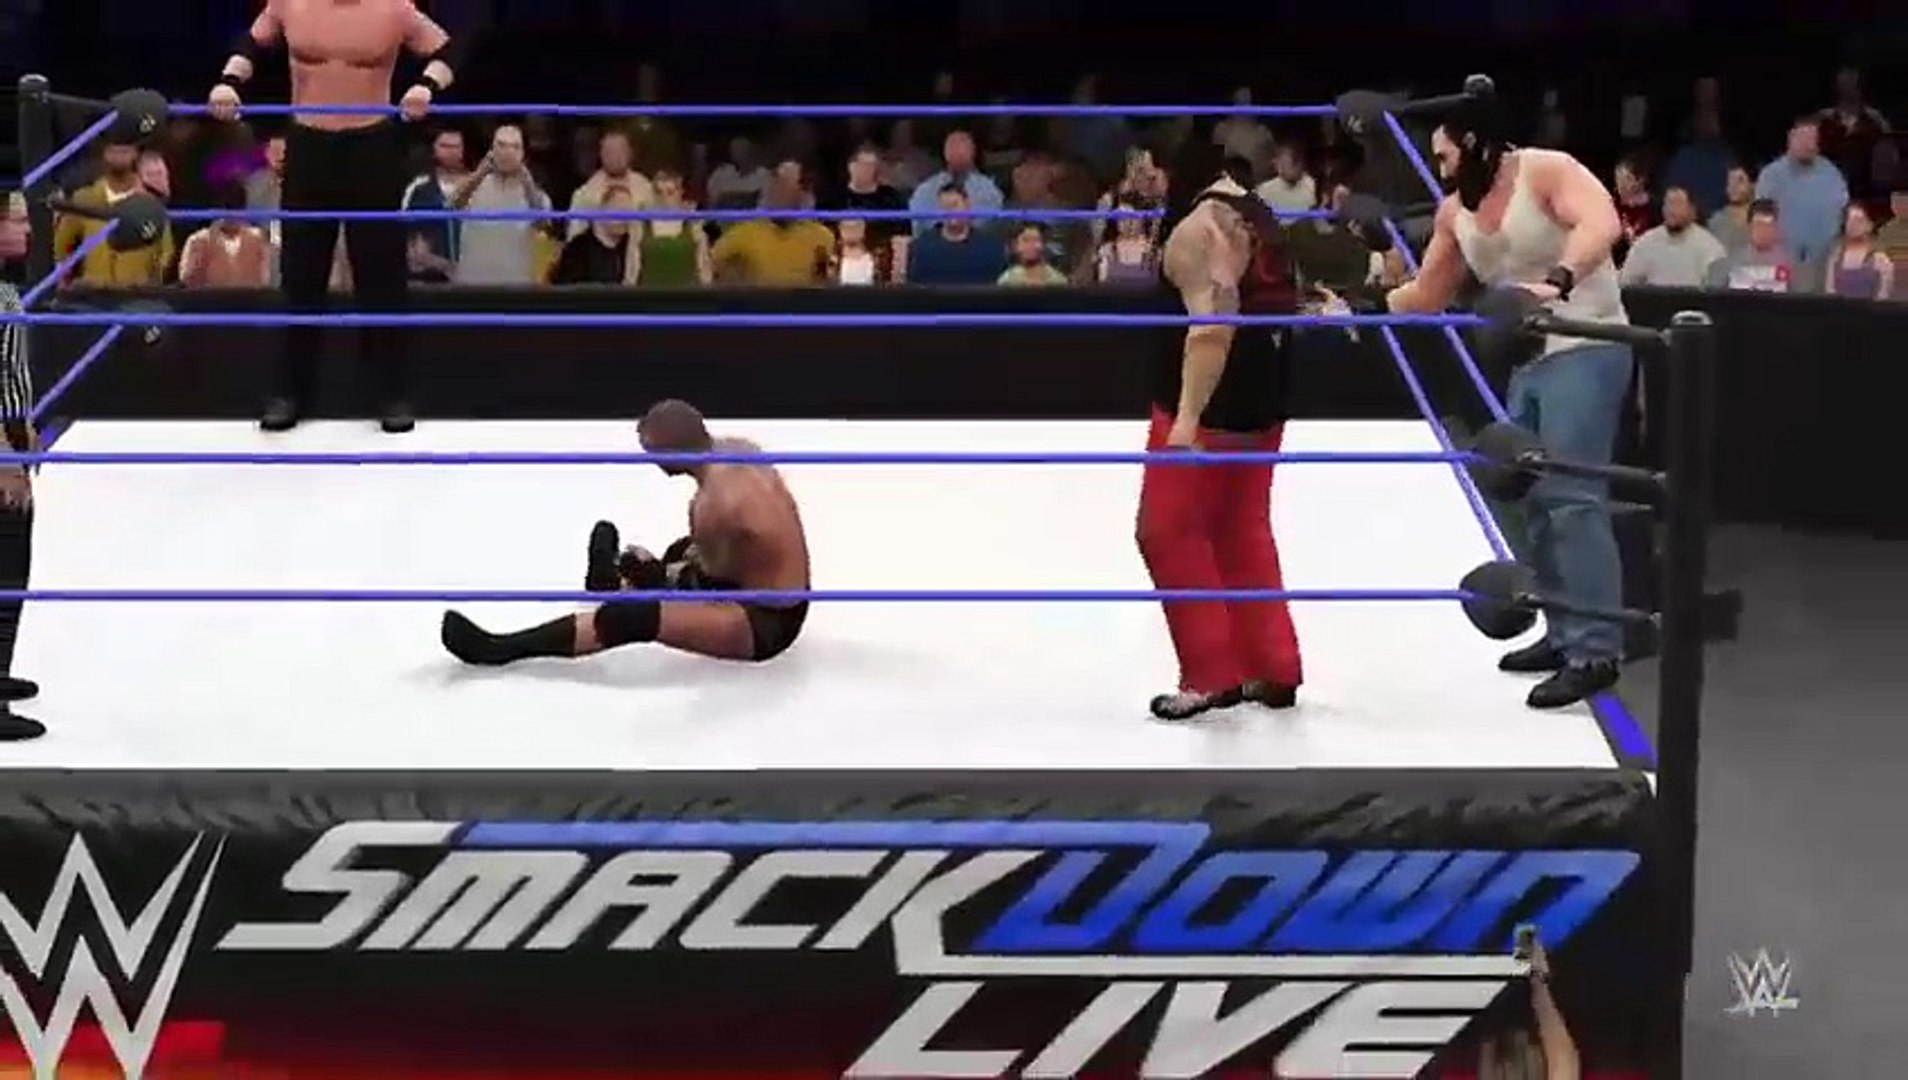 Watch WWE Smackdown October 2016 Full Show | WWE Smackdown 10/11/16 Full Show Part 1 WWE 2K16